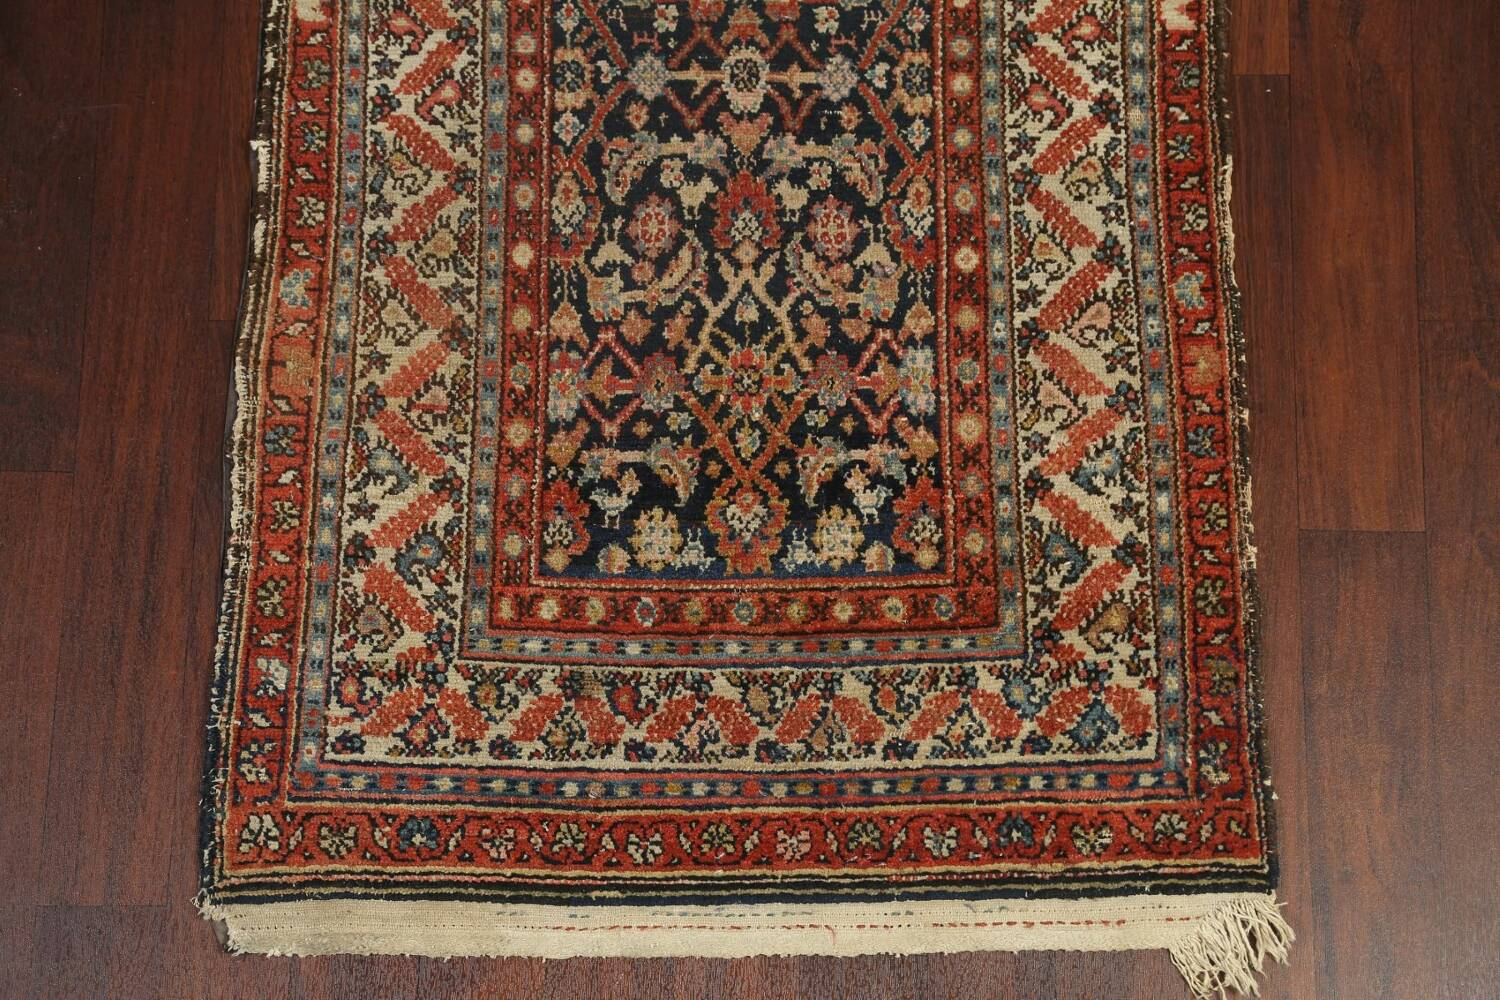 Pre-1900 Antique Vegetable Dye Malayer Persian Rug 3x13 image 5